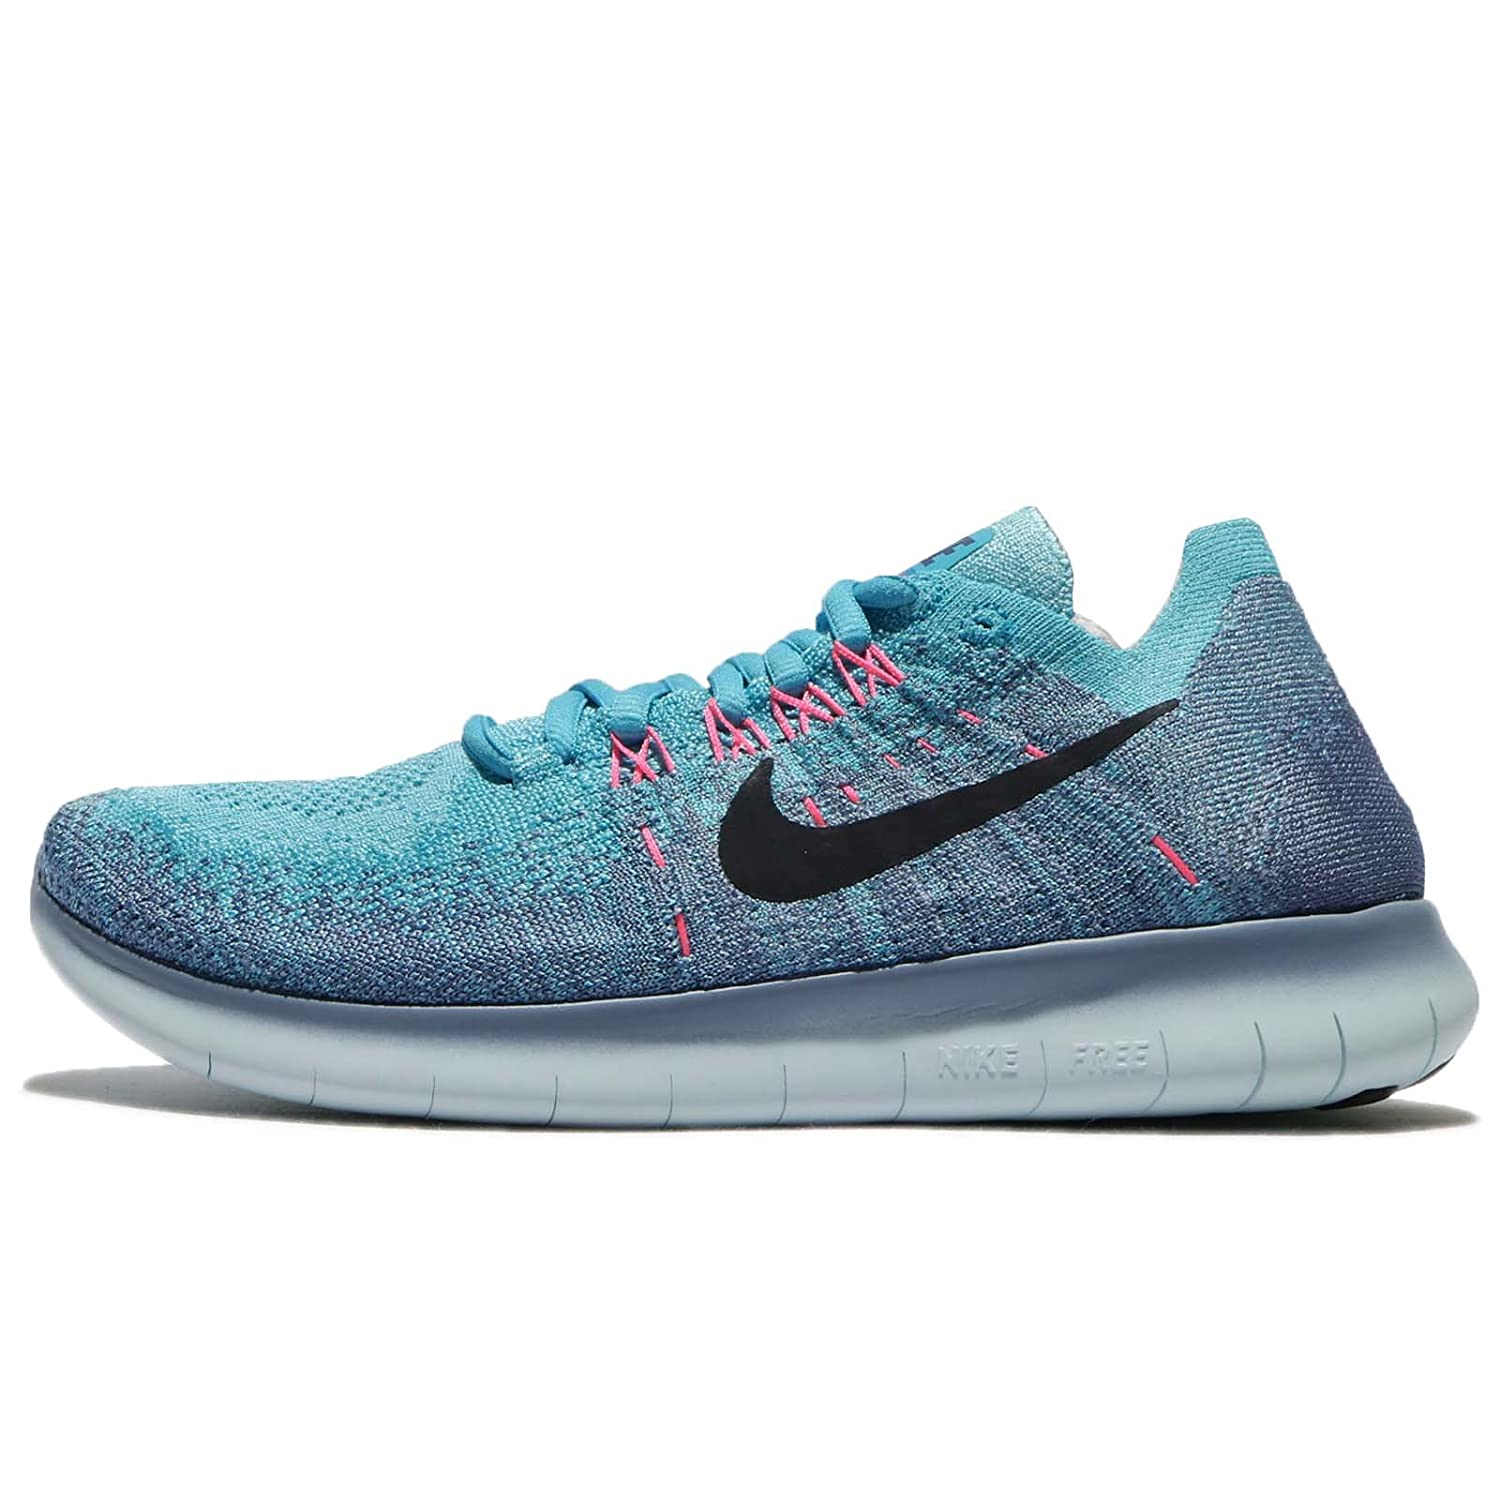 reputable site fe2f1 ee2e3 Amazon.com   NIKE Womens Free RN Flyknit 2017 Running Shoe Work Blue Dark  Obsidian-Chlorine Blue (7.5)   Road Running